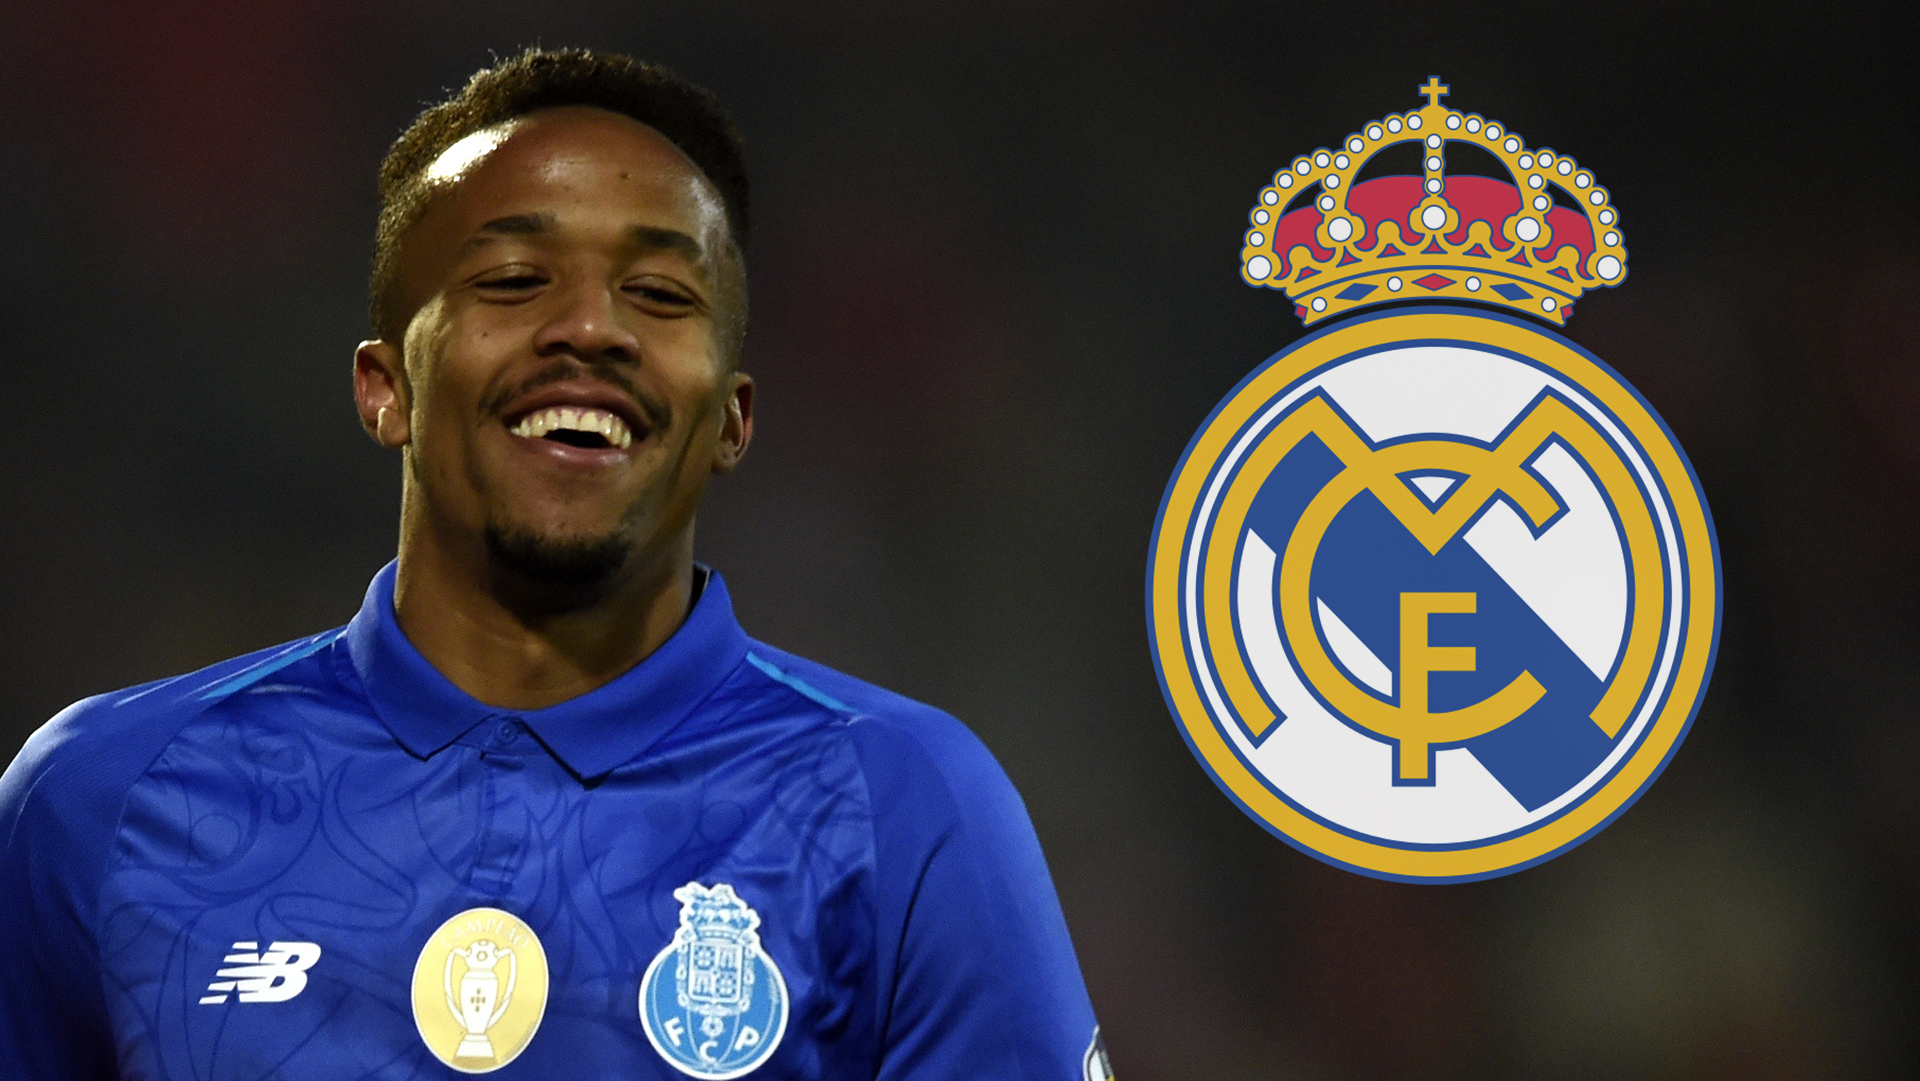 Eder Militao Update: Real Madrid Sign €50m Eder Militao From Porto On Six-year